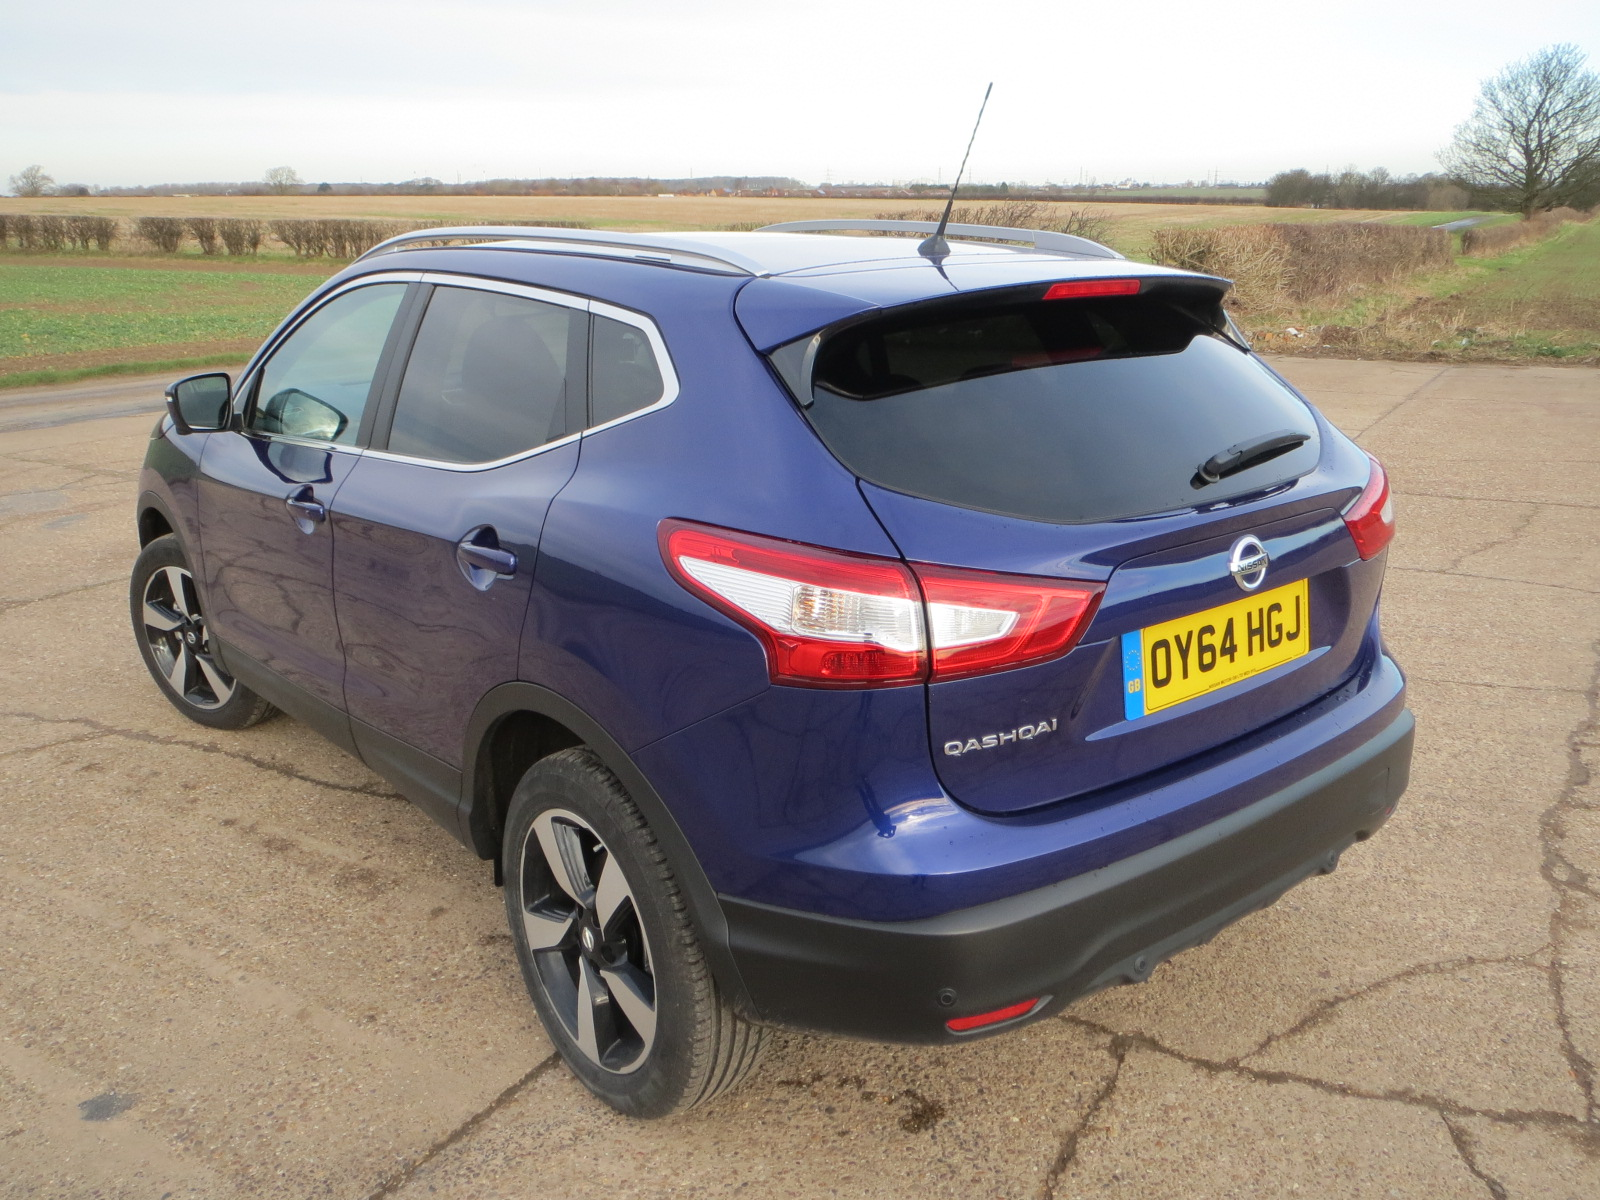 nissan qashqai n tec 1 2 dig t 115ps road test report and review wheel world reviews. Black Bedroom Furniture Sets. Home Design Ideas